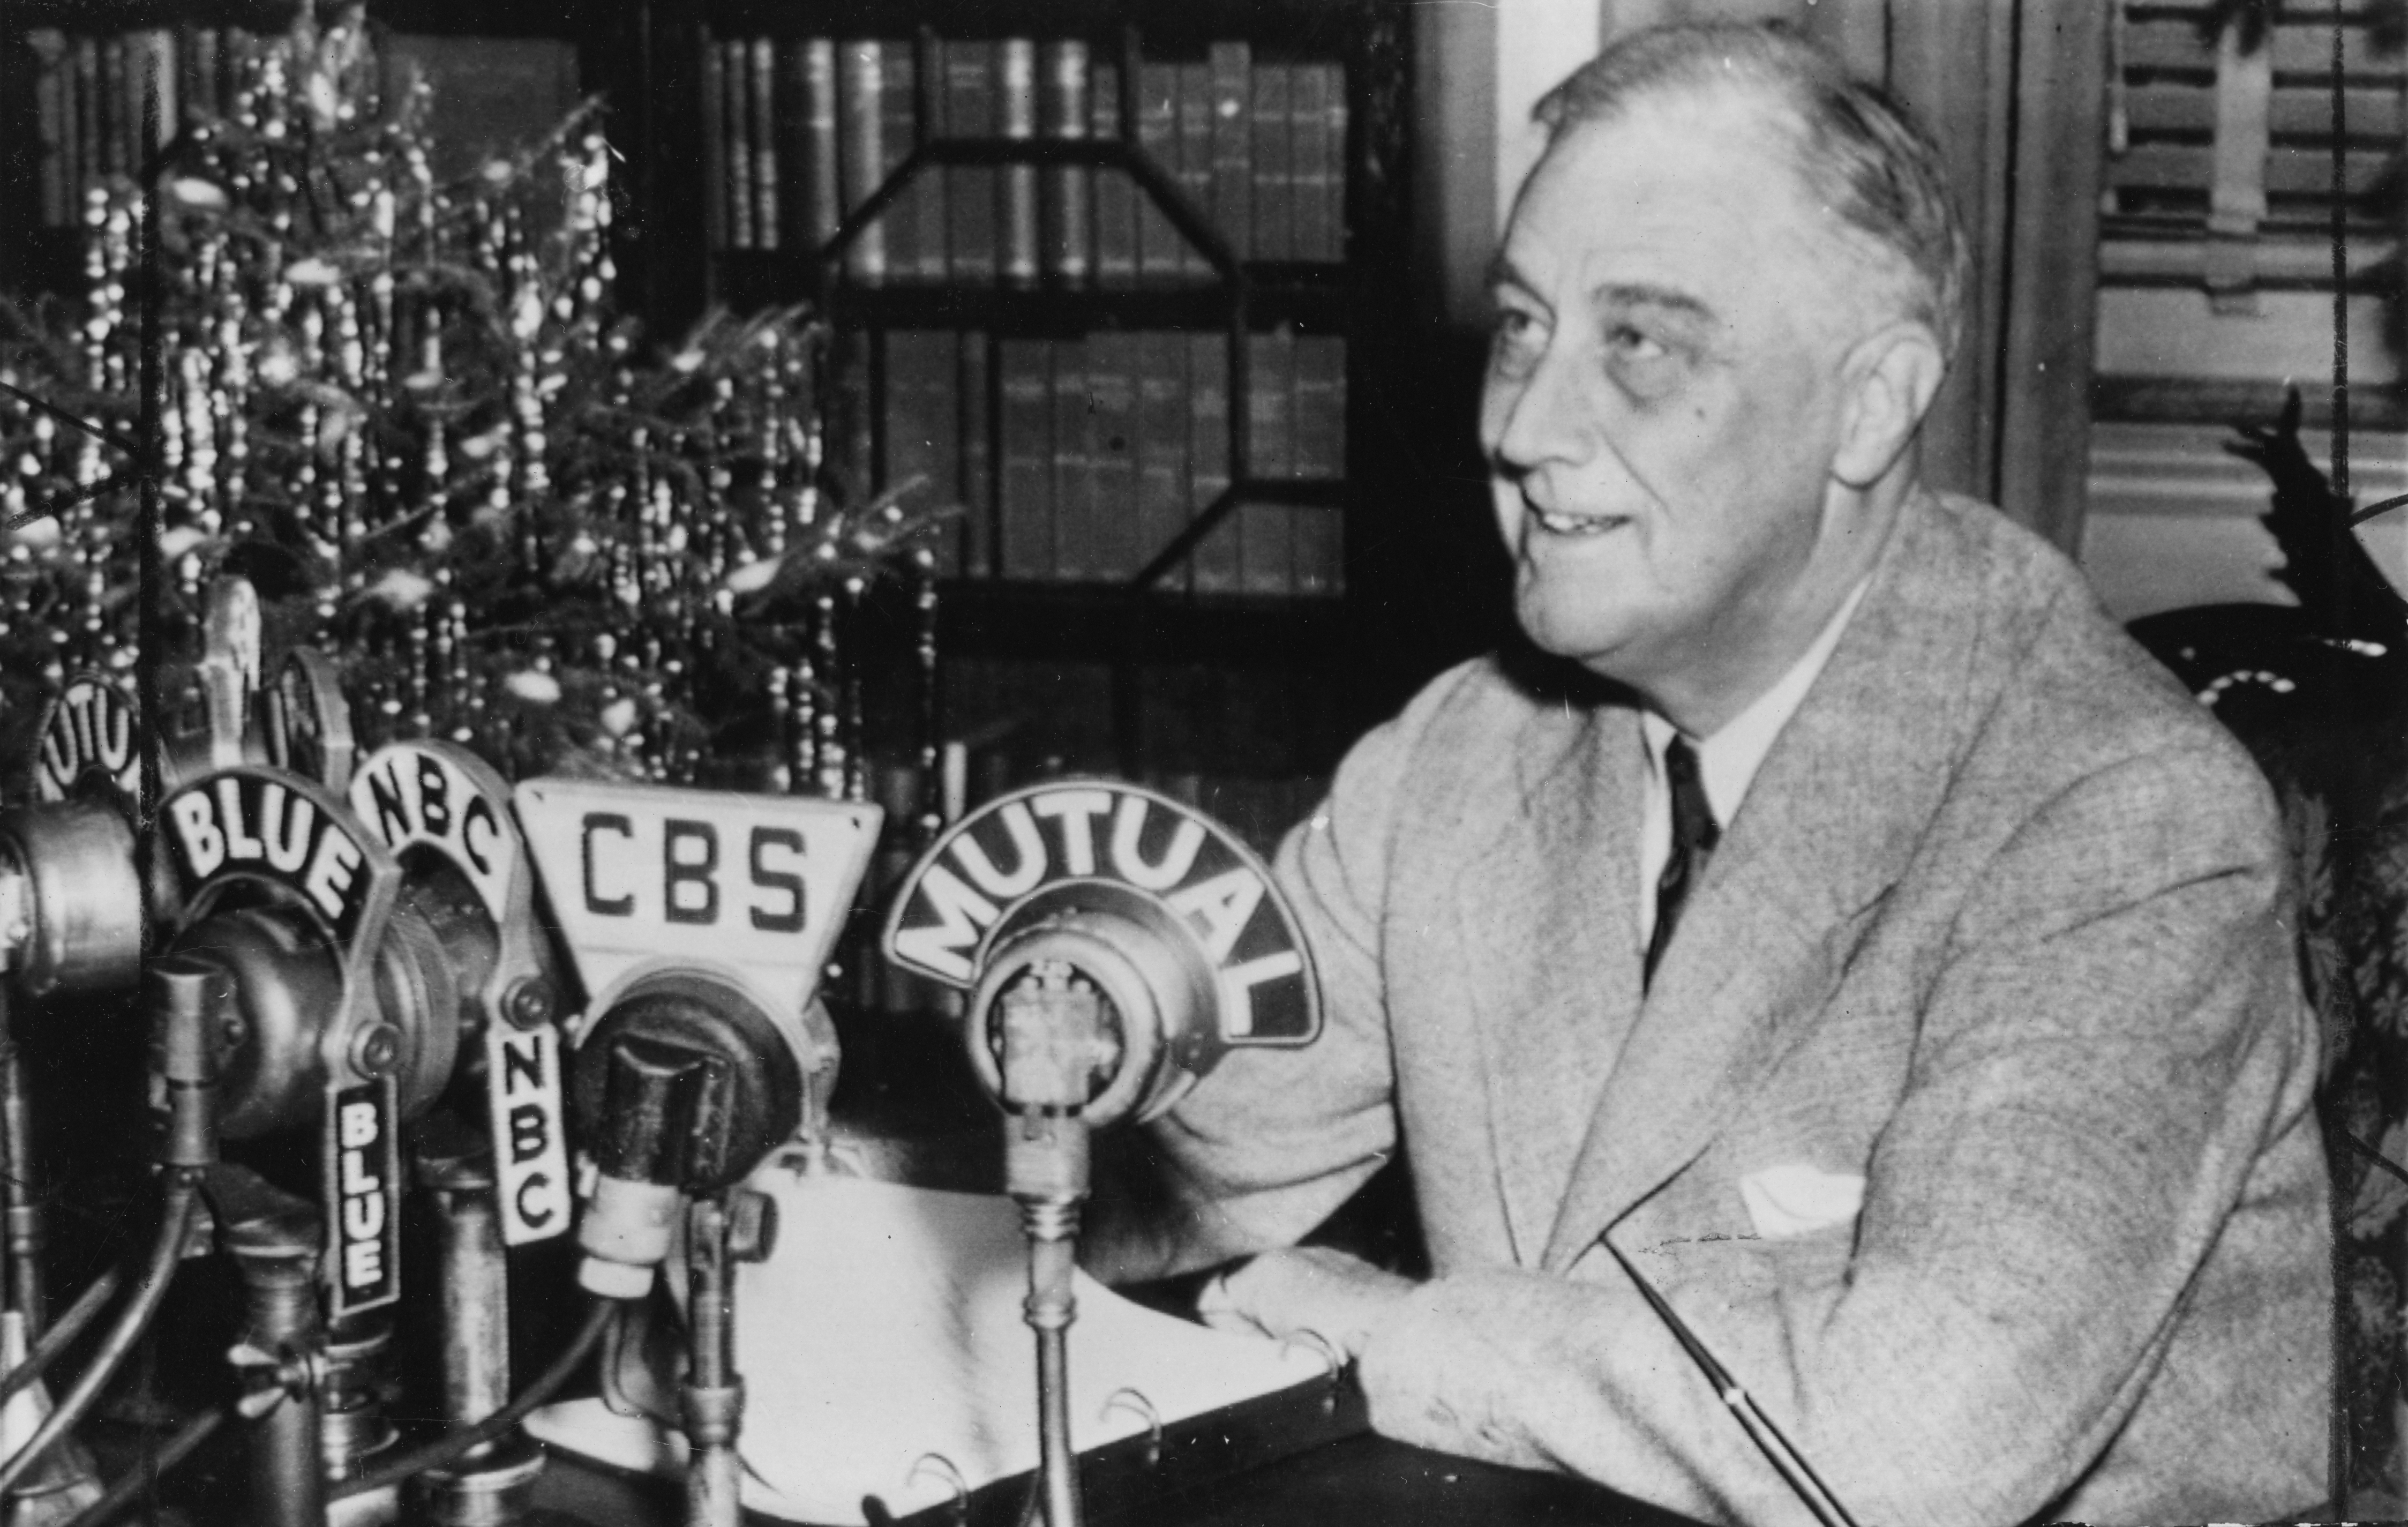 fdr s the federalist a closer look at a priceless book fdr s the federalist a closer look at a priceless book forward roosevelt